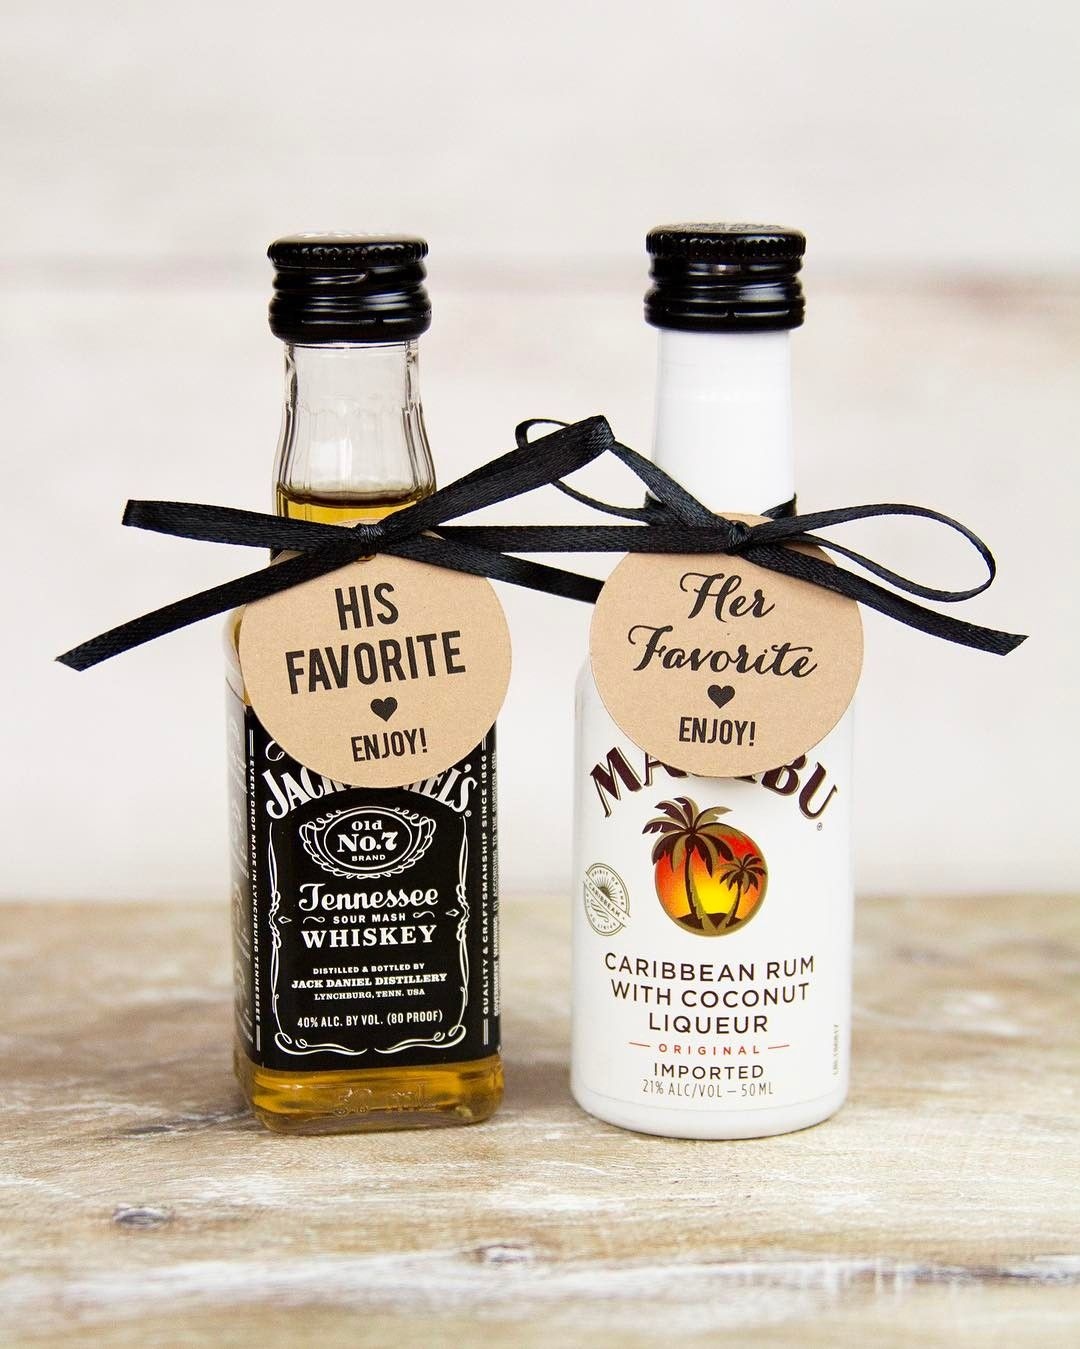 Pin by Andrea Duca on Wedding favors | Pinterest | Mini liquor ...